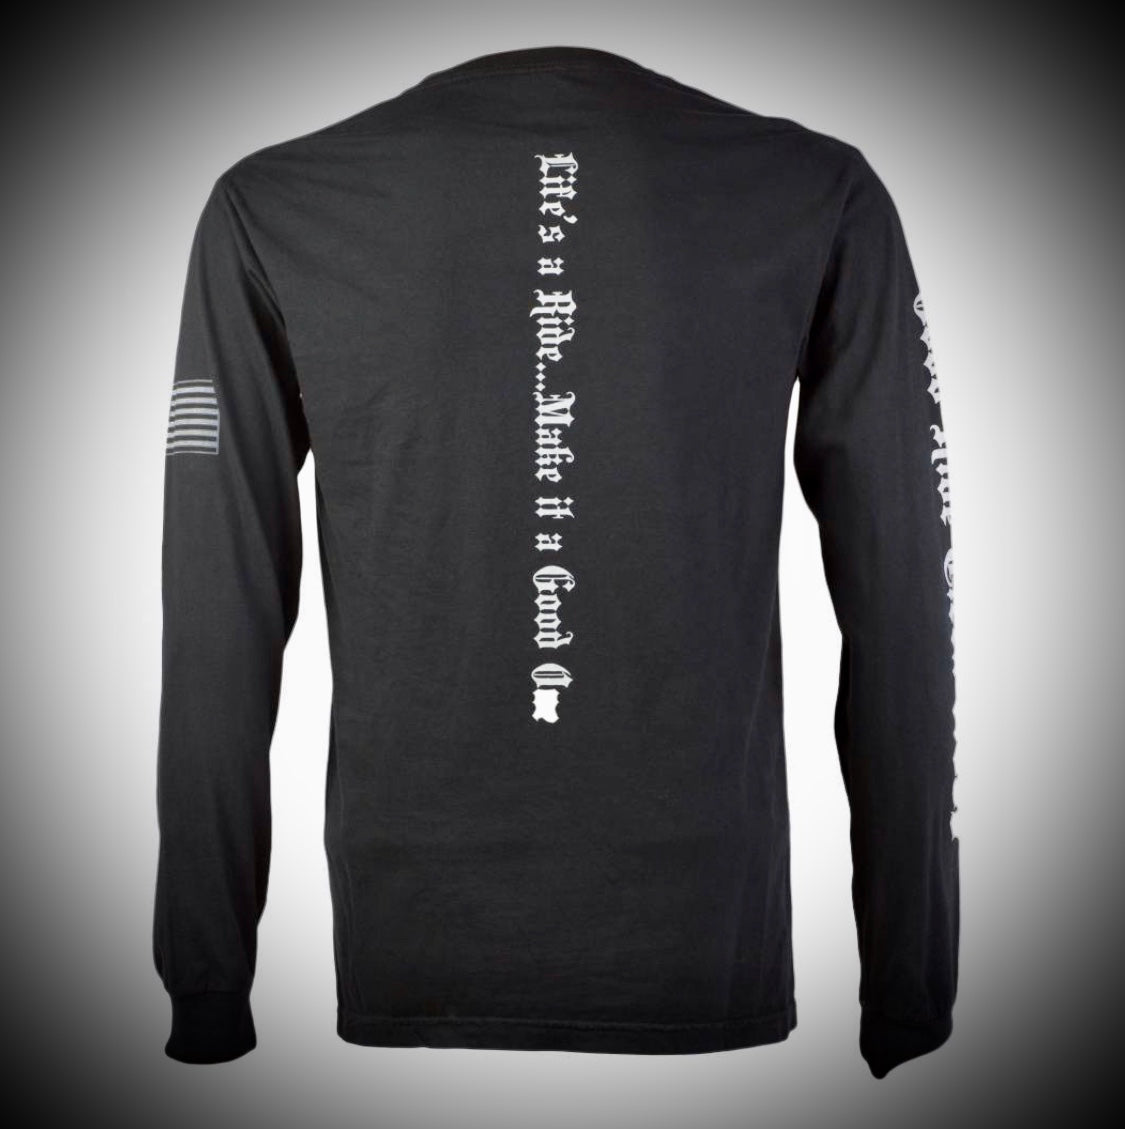 Men's & Women's Black Long Sleeve Tee Shirt w/ GR